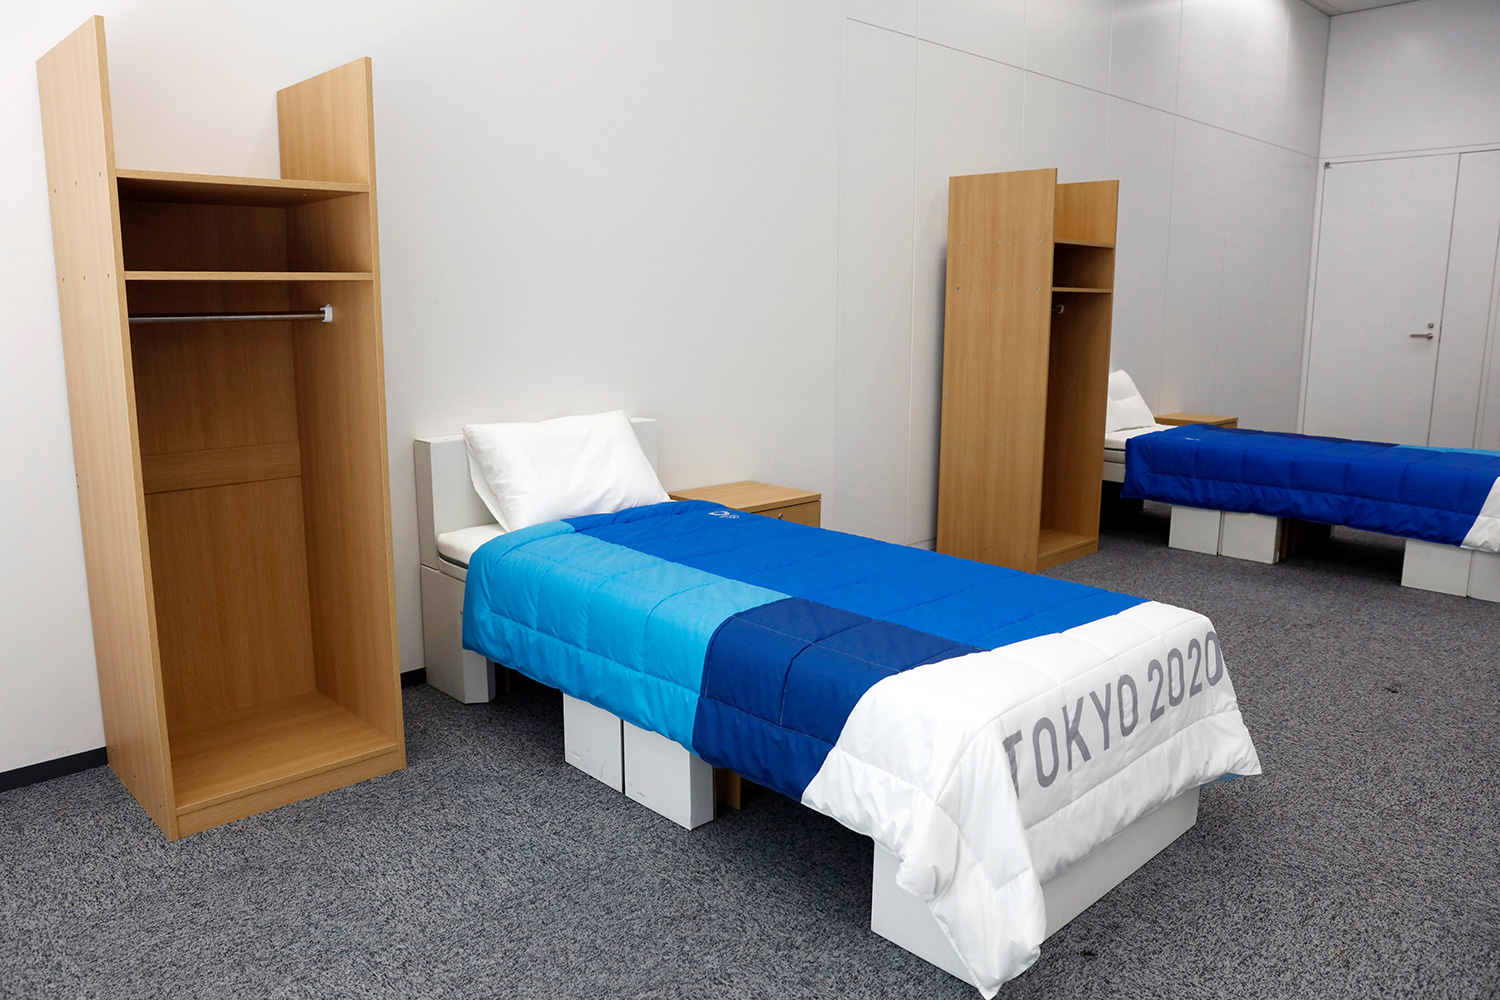 beds at the Tokyo 2020 Olympic and Paralympic Villages